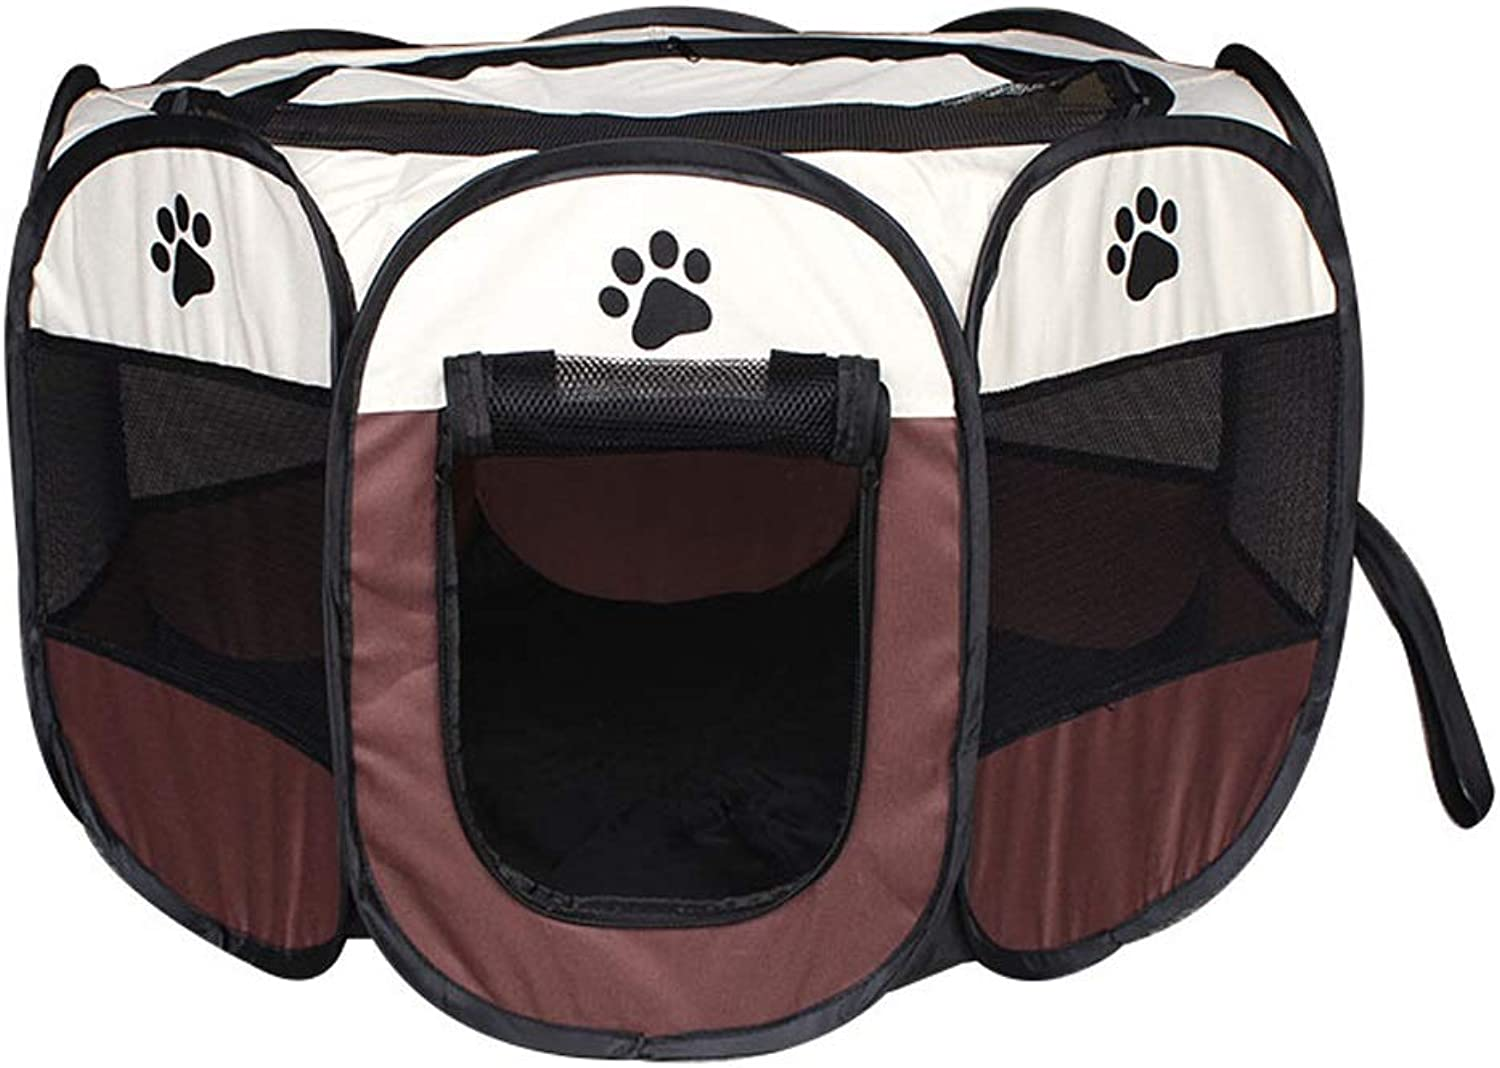 LZRZBH Pet Playpen Portable Foldable Pet Puppy Dog Cat Rabbit Play Pen Cage Waterproof Kennel Tent Fence for Indoor Outdoor (color   C, Size   M)